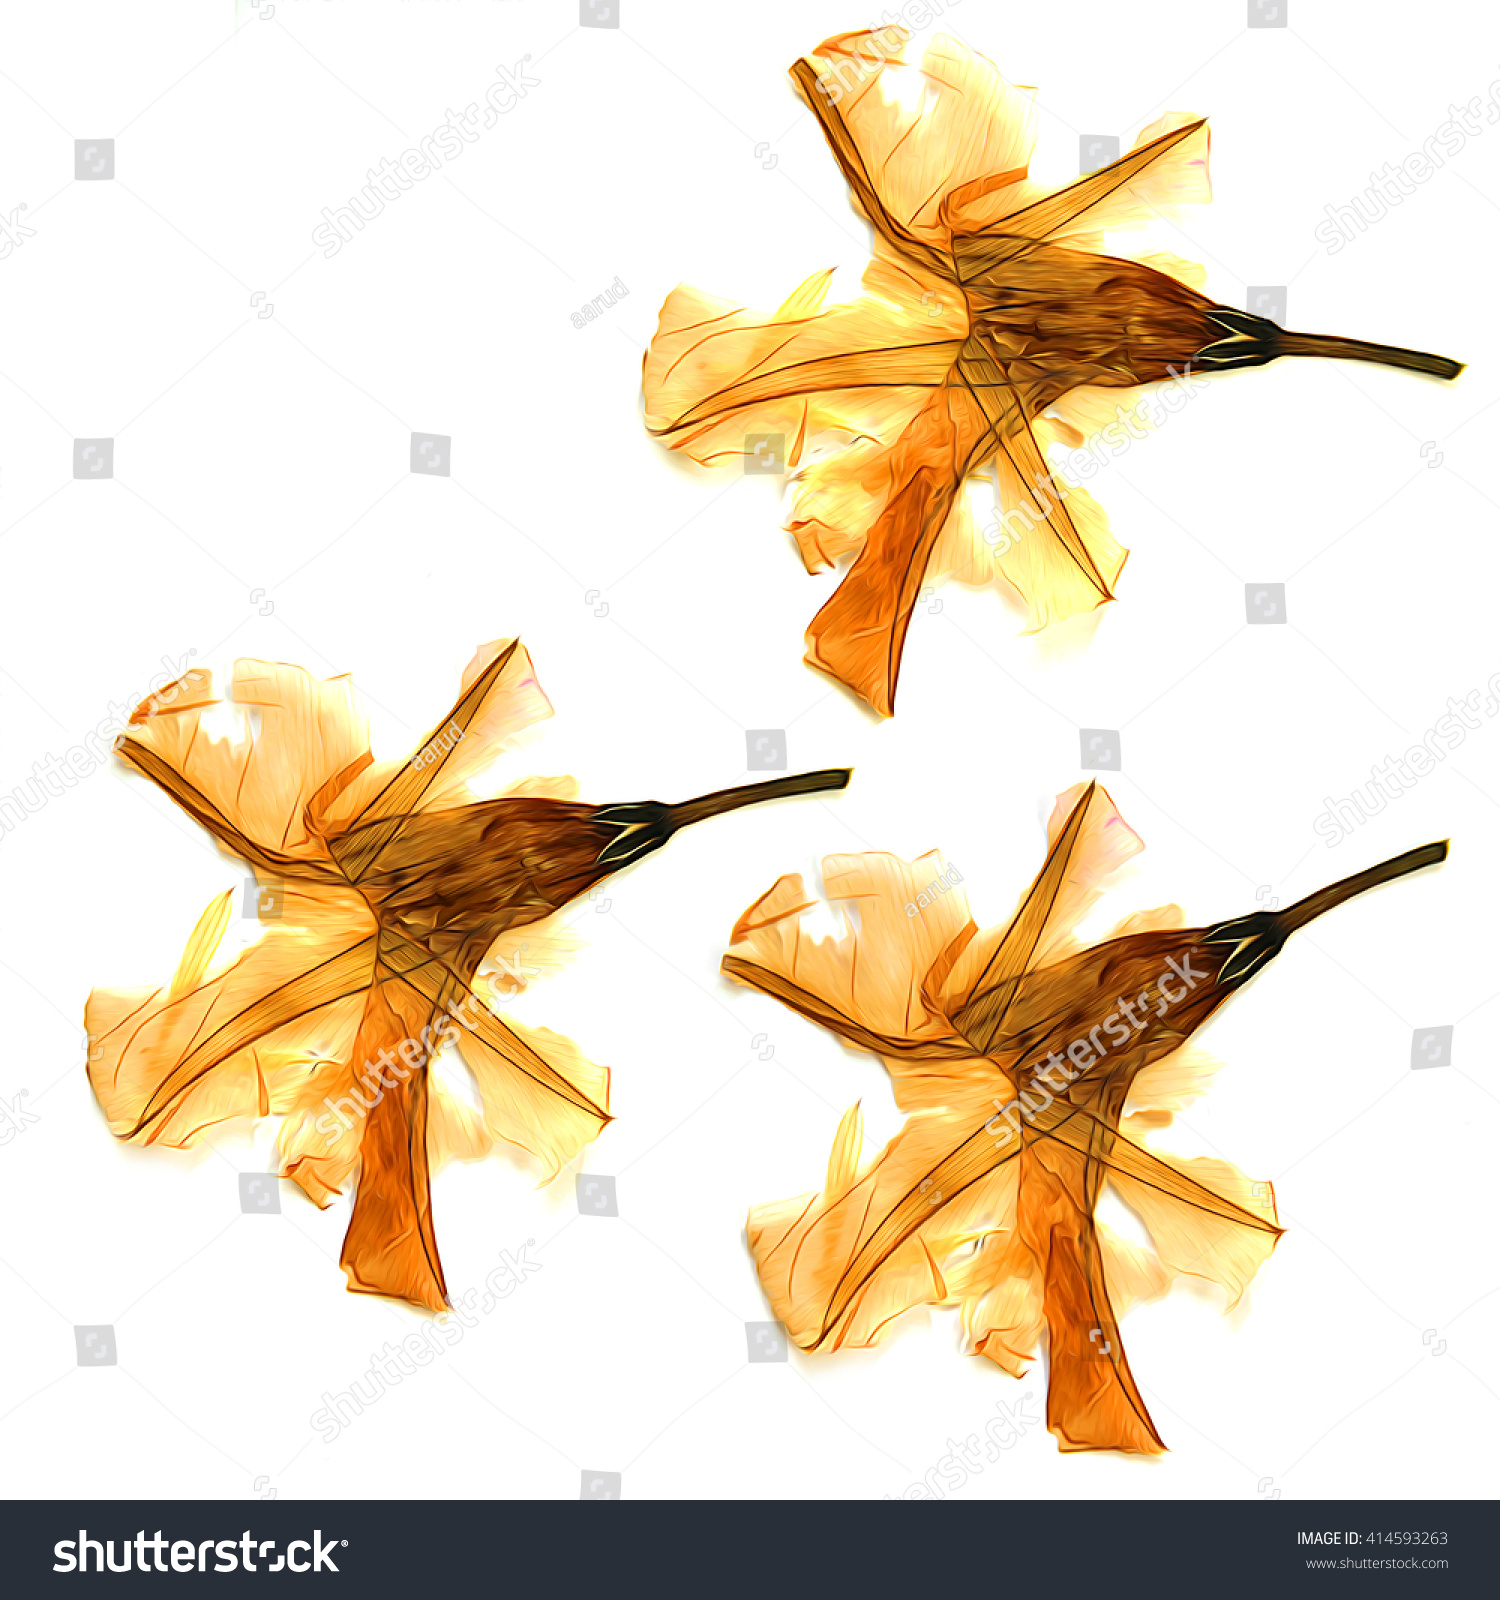 How to scrapbook dried flowers - Oil Paint Dry Yellow And Orange Flowers Alstroemeria Draw Object Isolated Flower Set On White Background